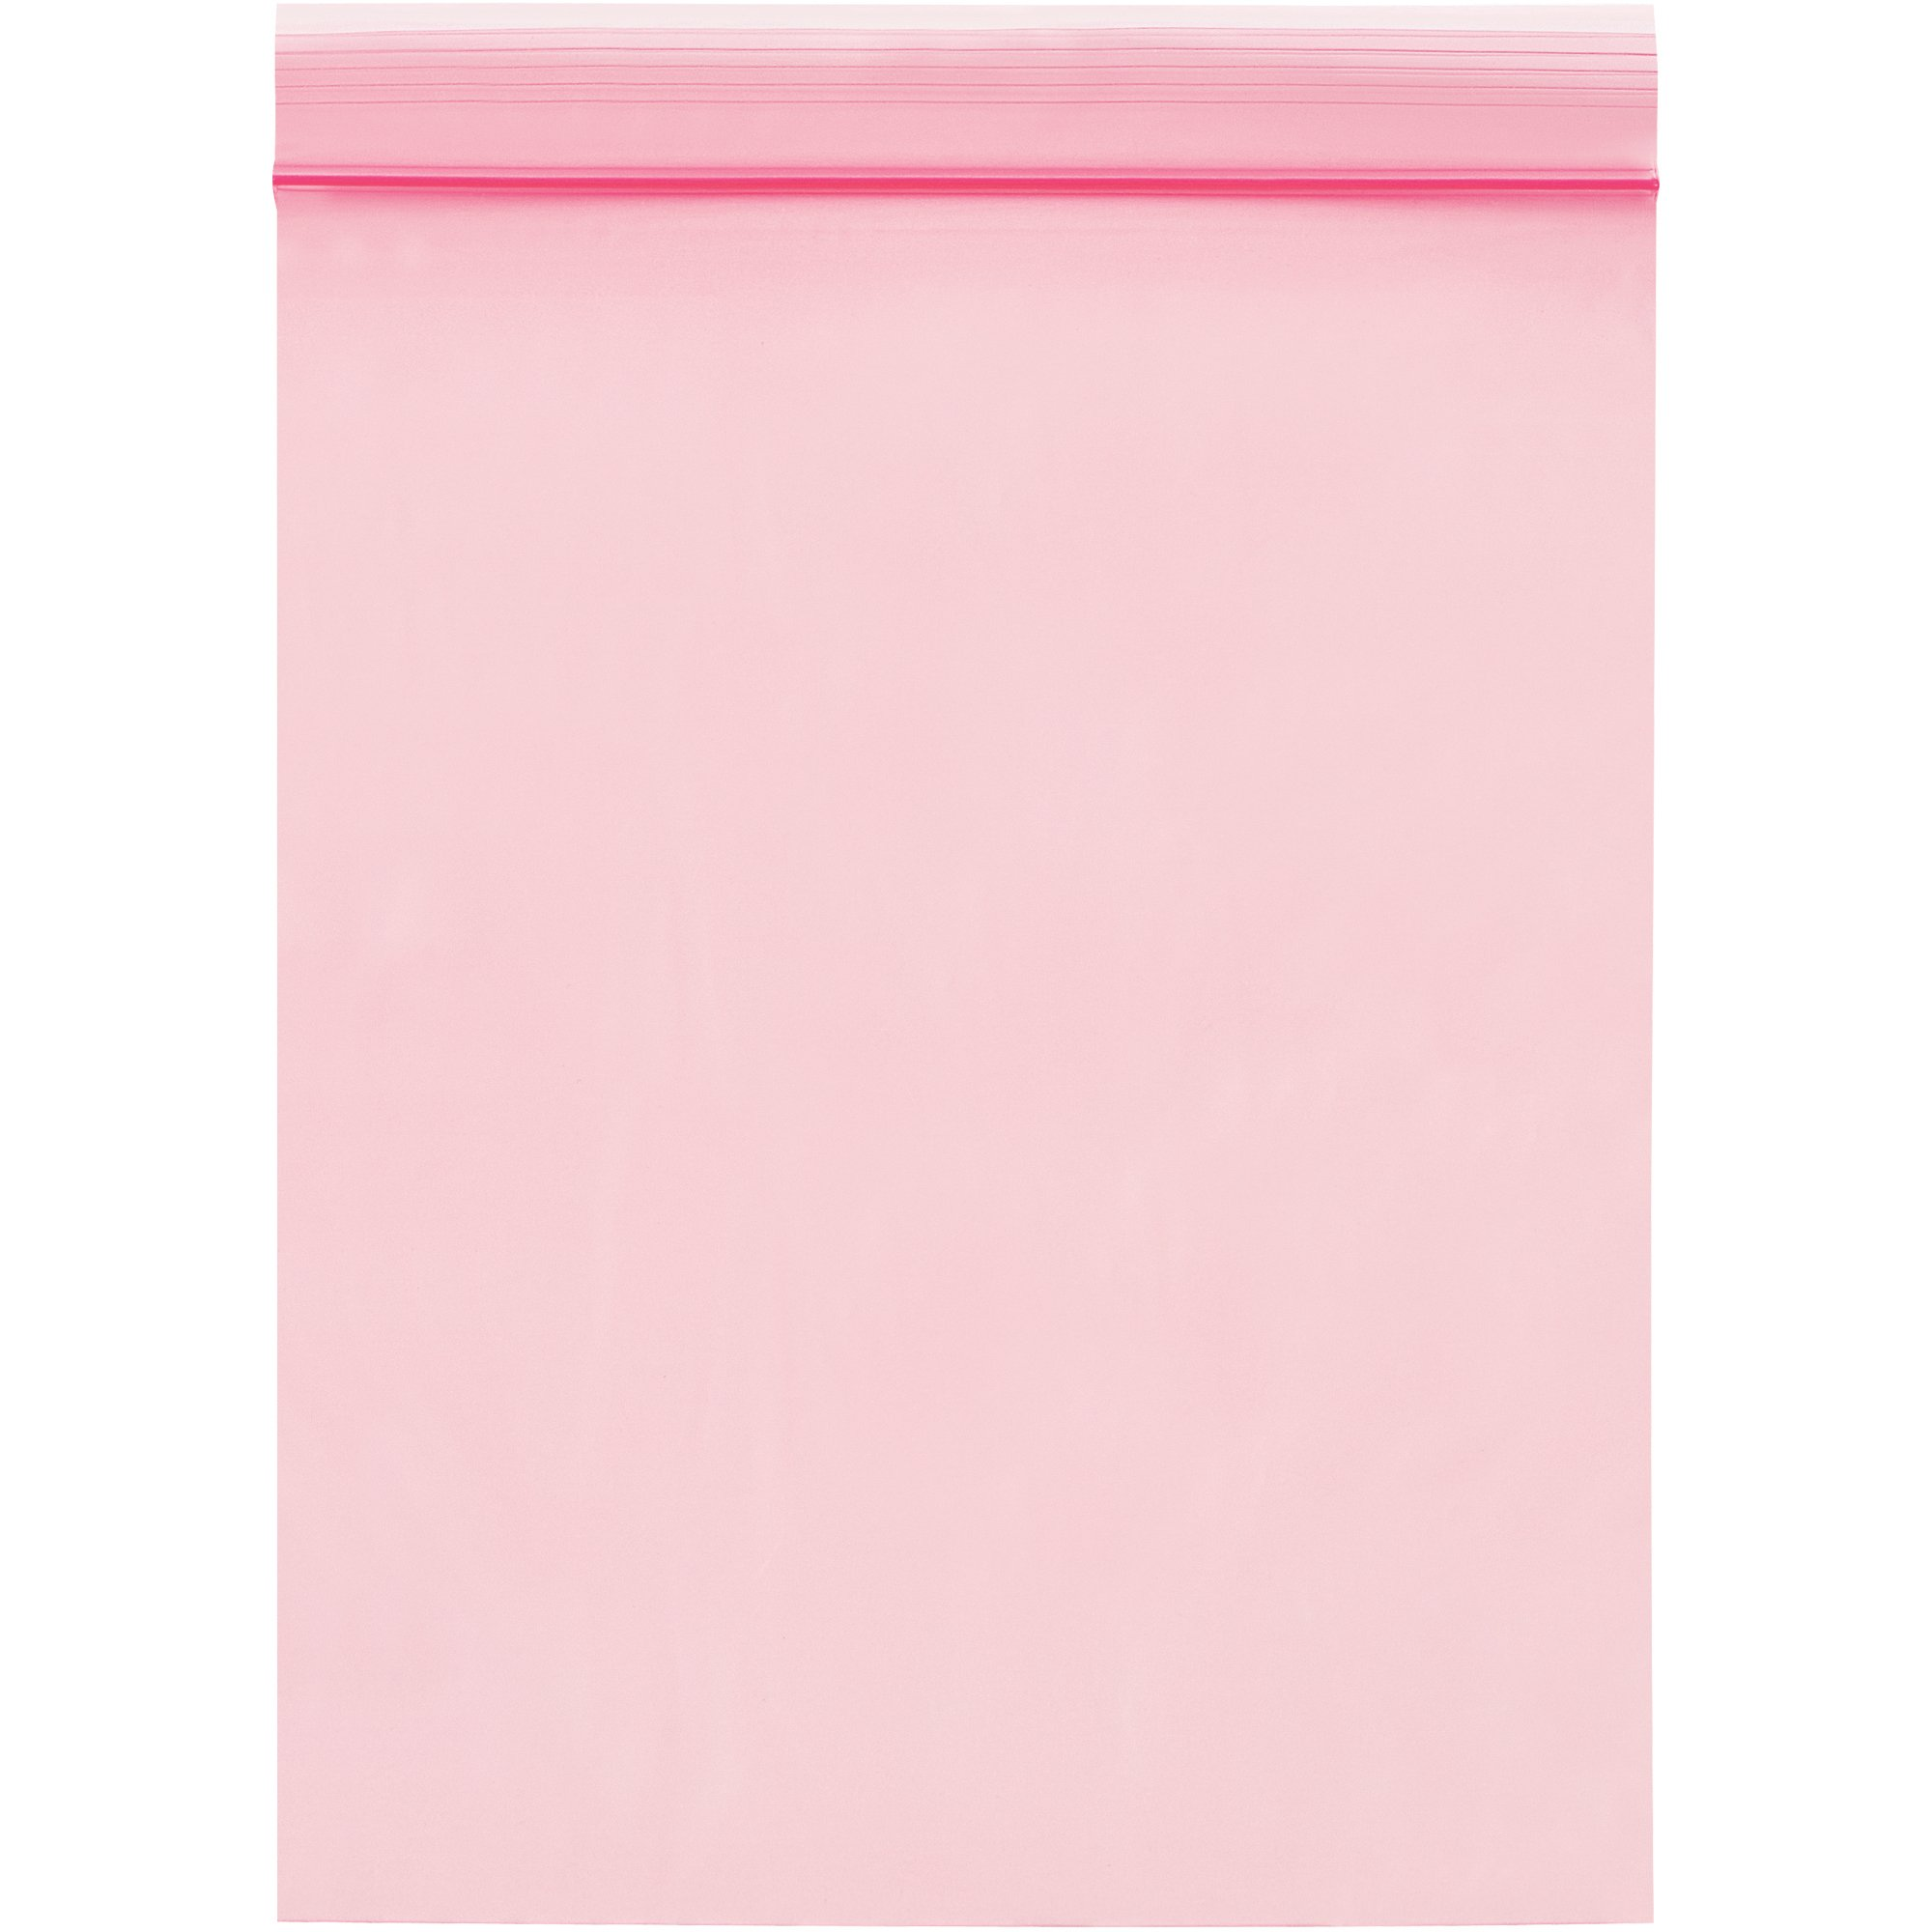 Boxes Fast BFPBAS725 Anti-Static 2 Mil Reclosable Poly Bags, 6'' x 9'', Pink (Pack of 1000)